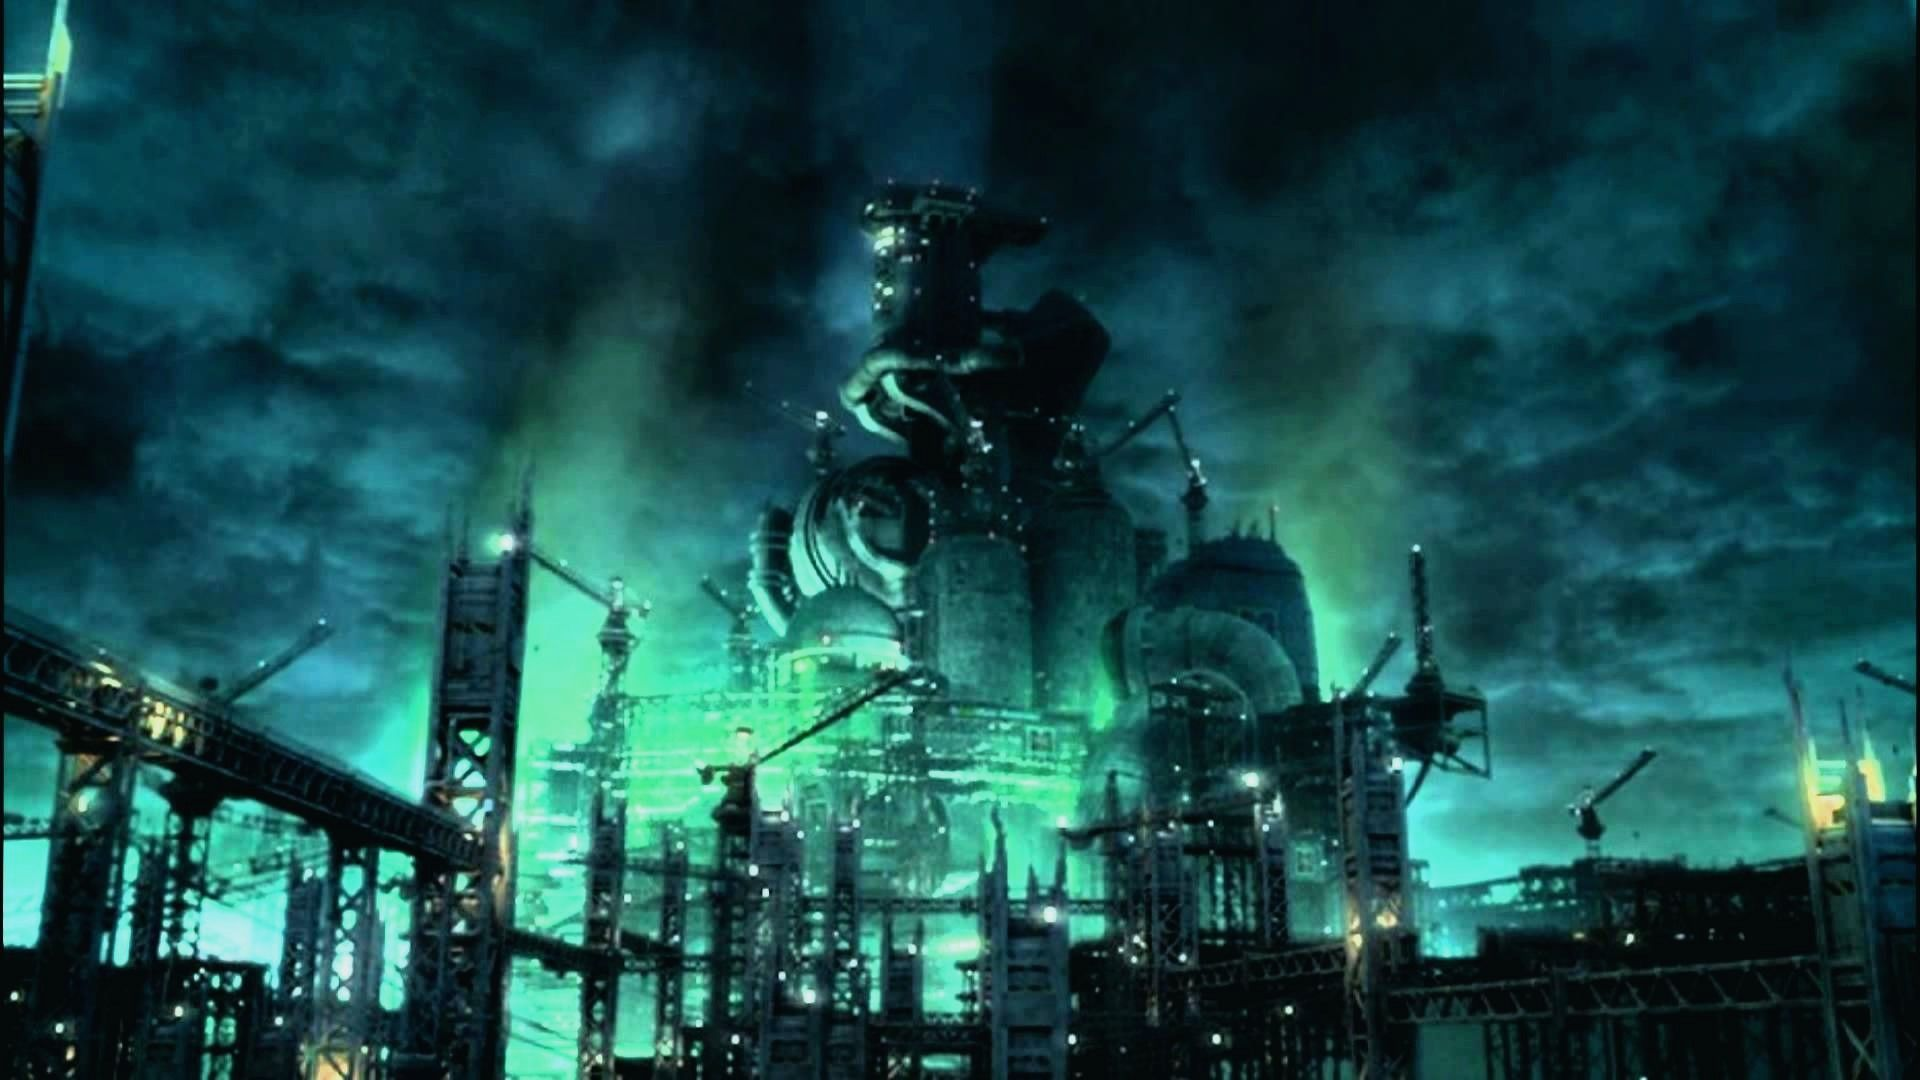 Final Fantasy Vii Wallpapers Top Free Final Fantasy Vii